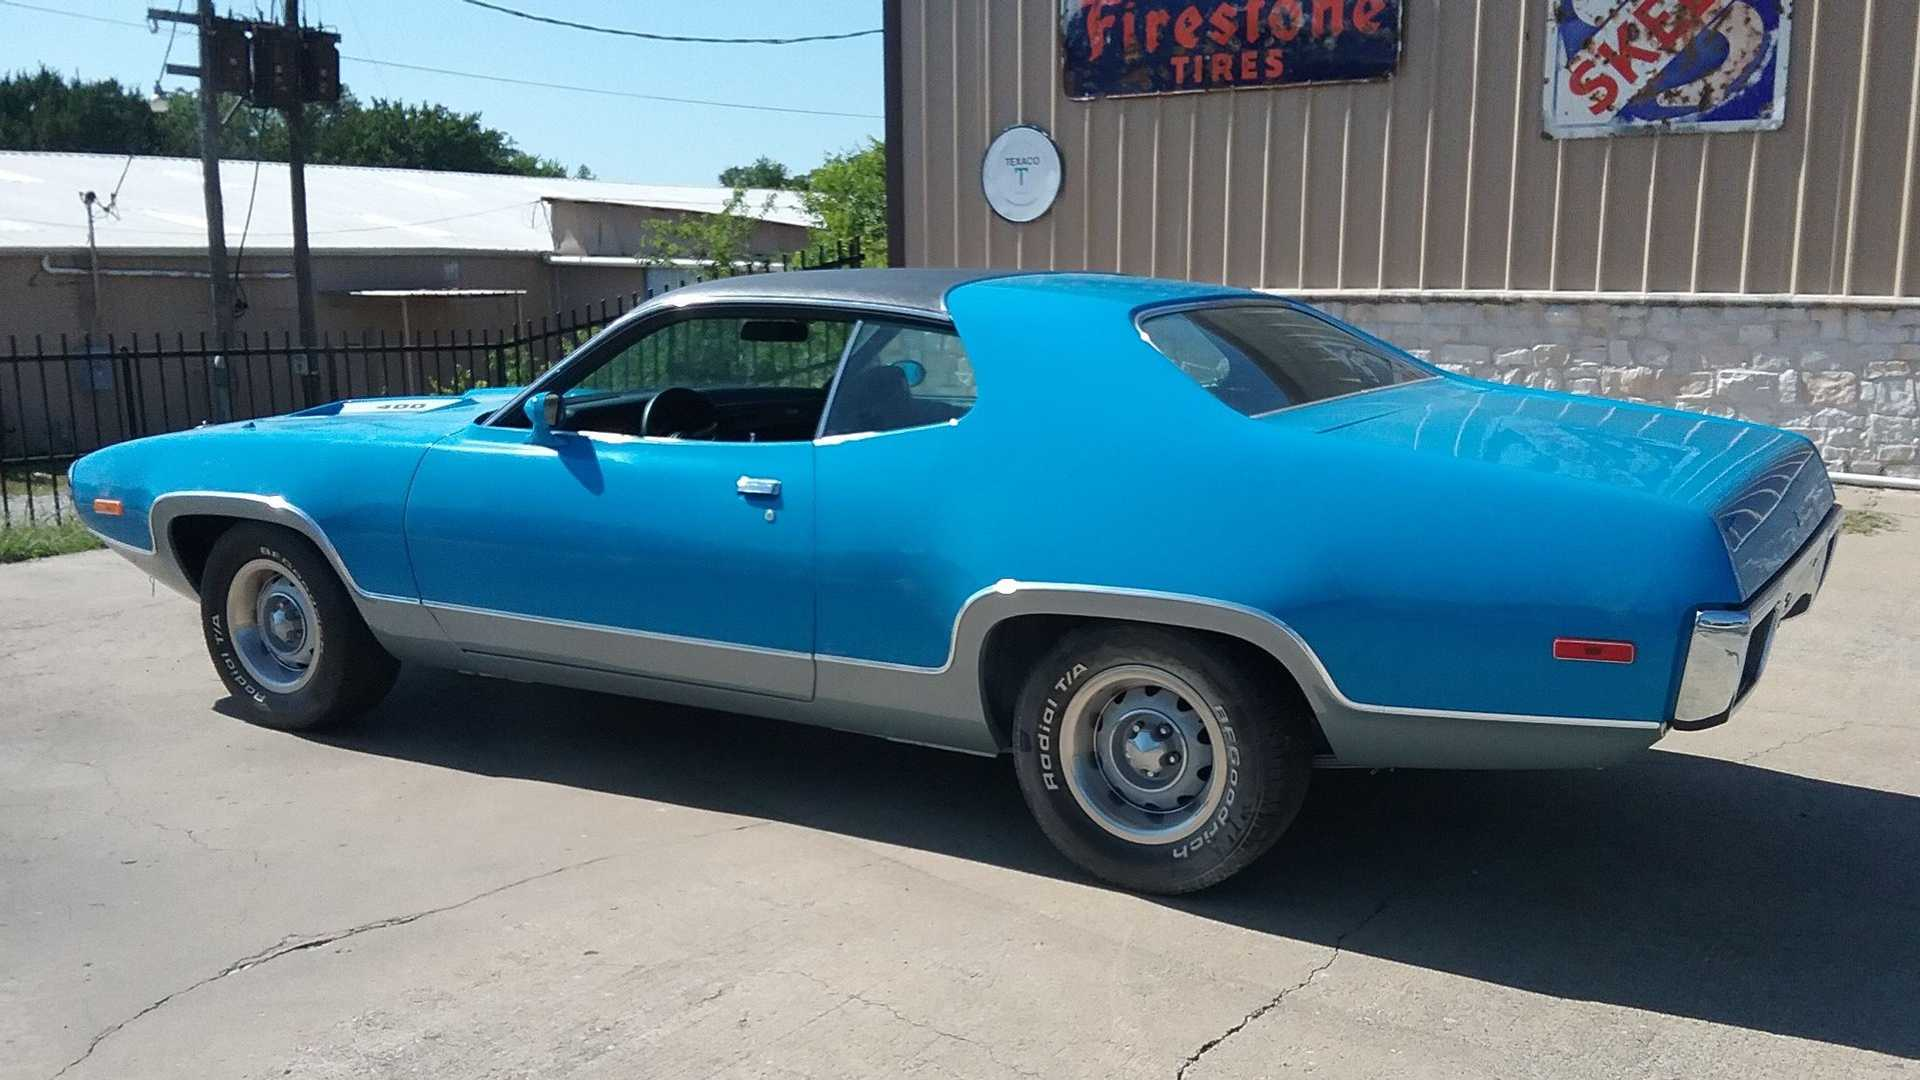 Fly Under The Radar In This 1972 Plymouth Satellite Sebring | Motorious